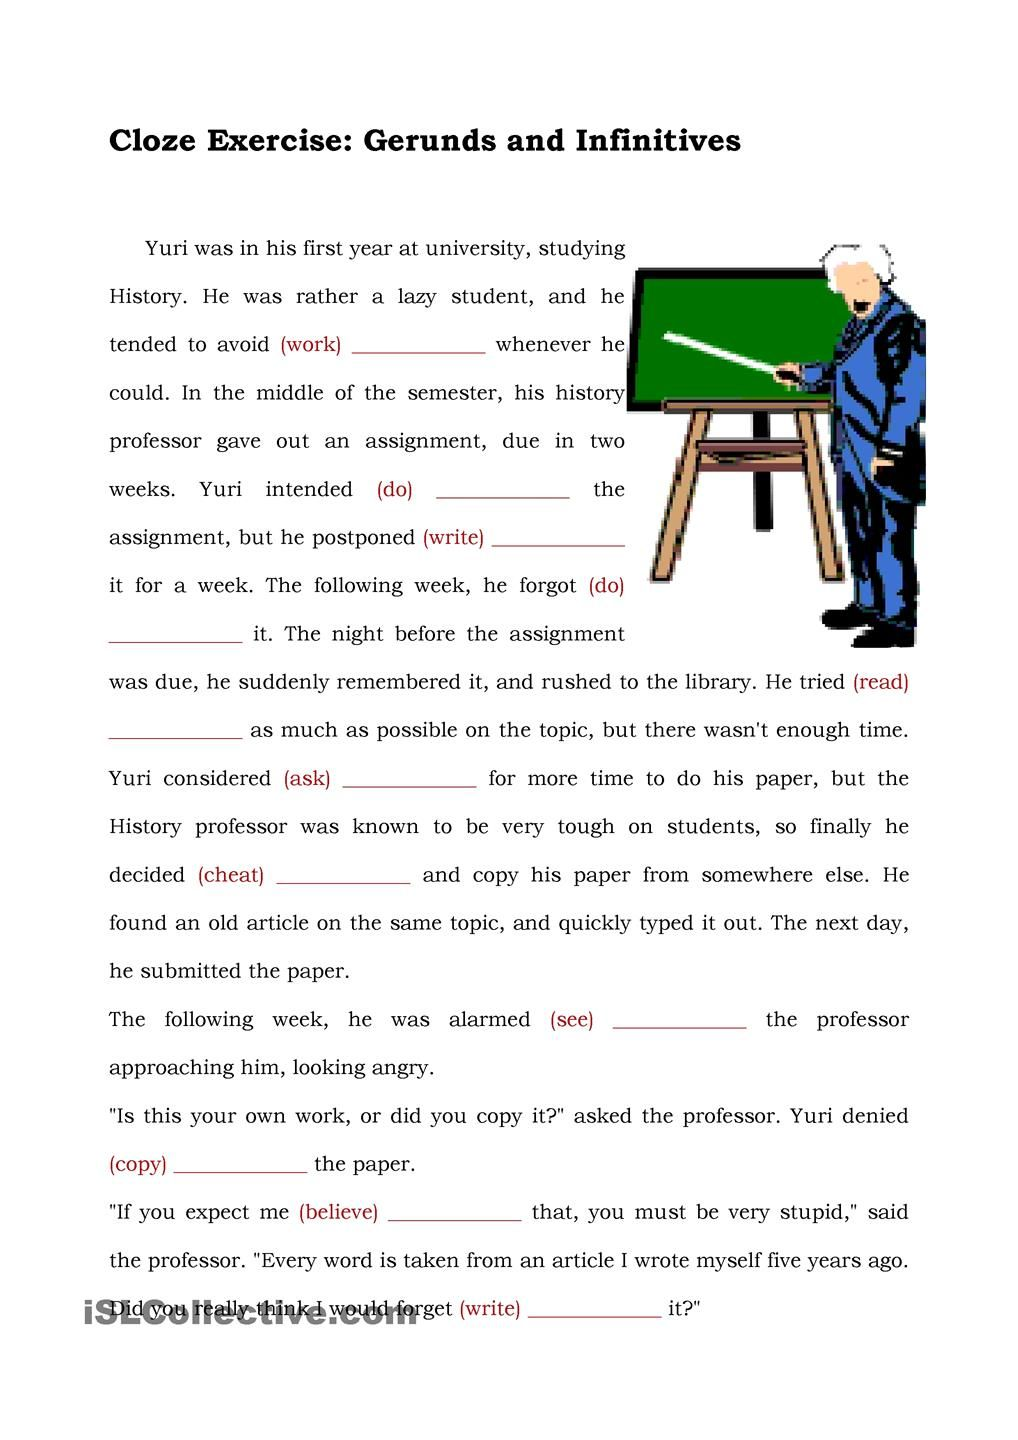 small resolution of GERUND AND INFINITIVE   Cloze activity